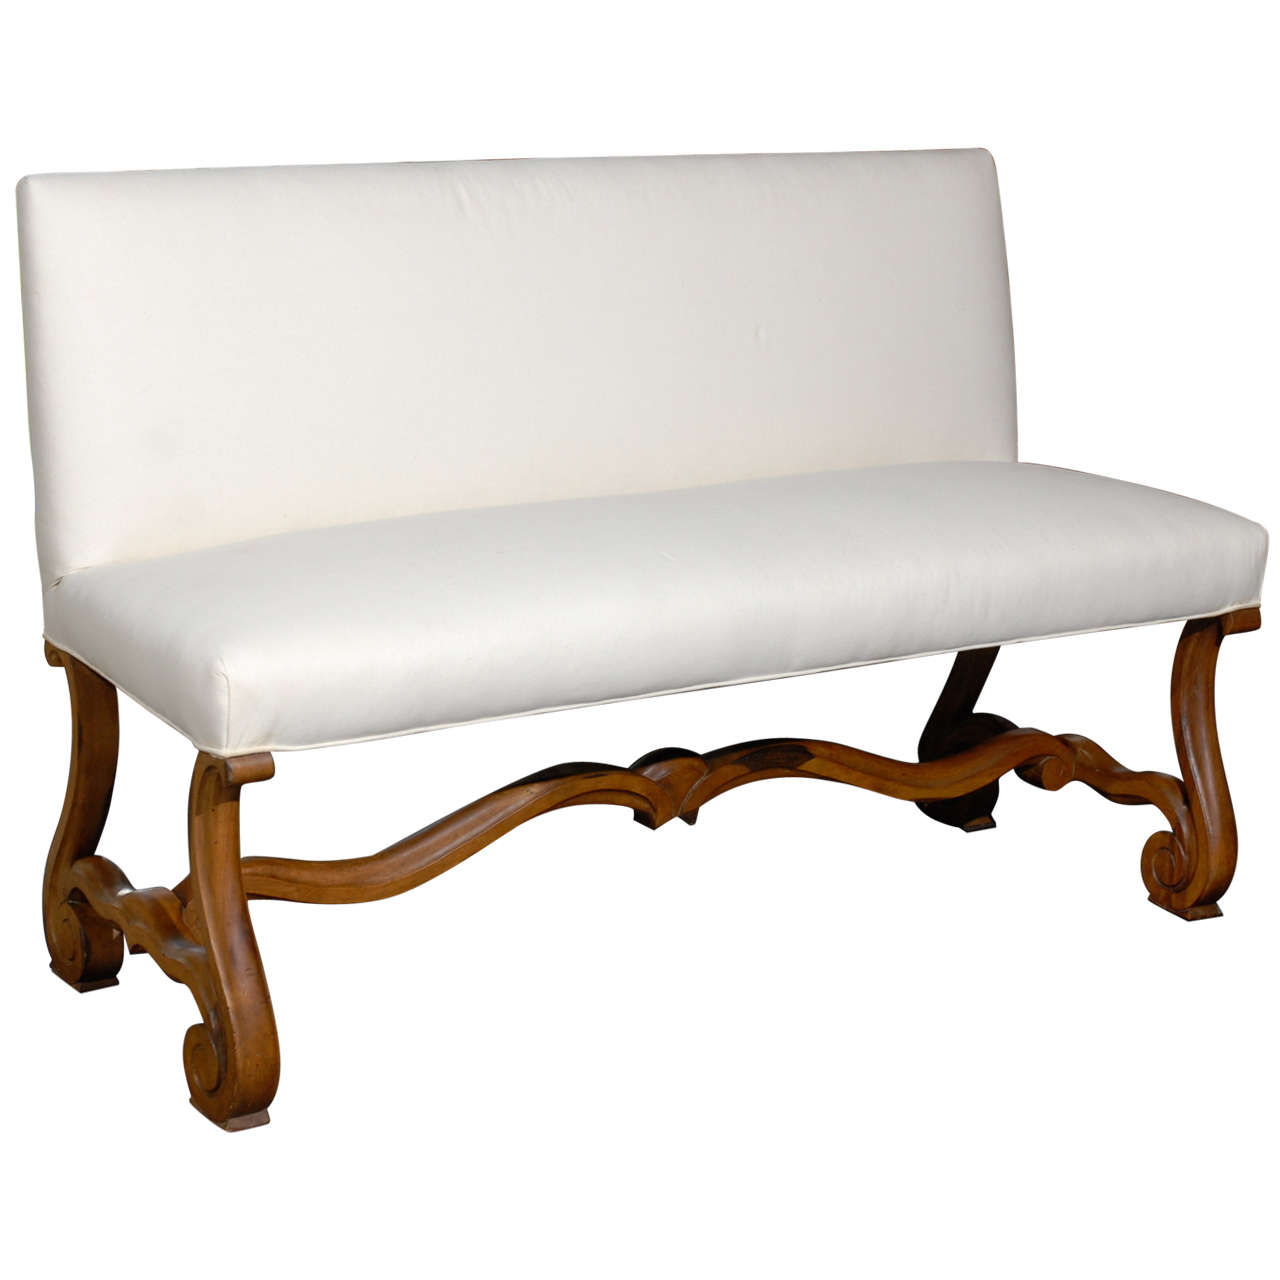 French upholstered bench settee at 1stdibs Padded benches